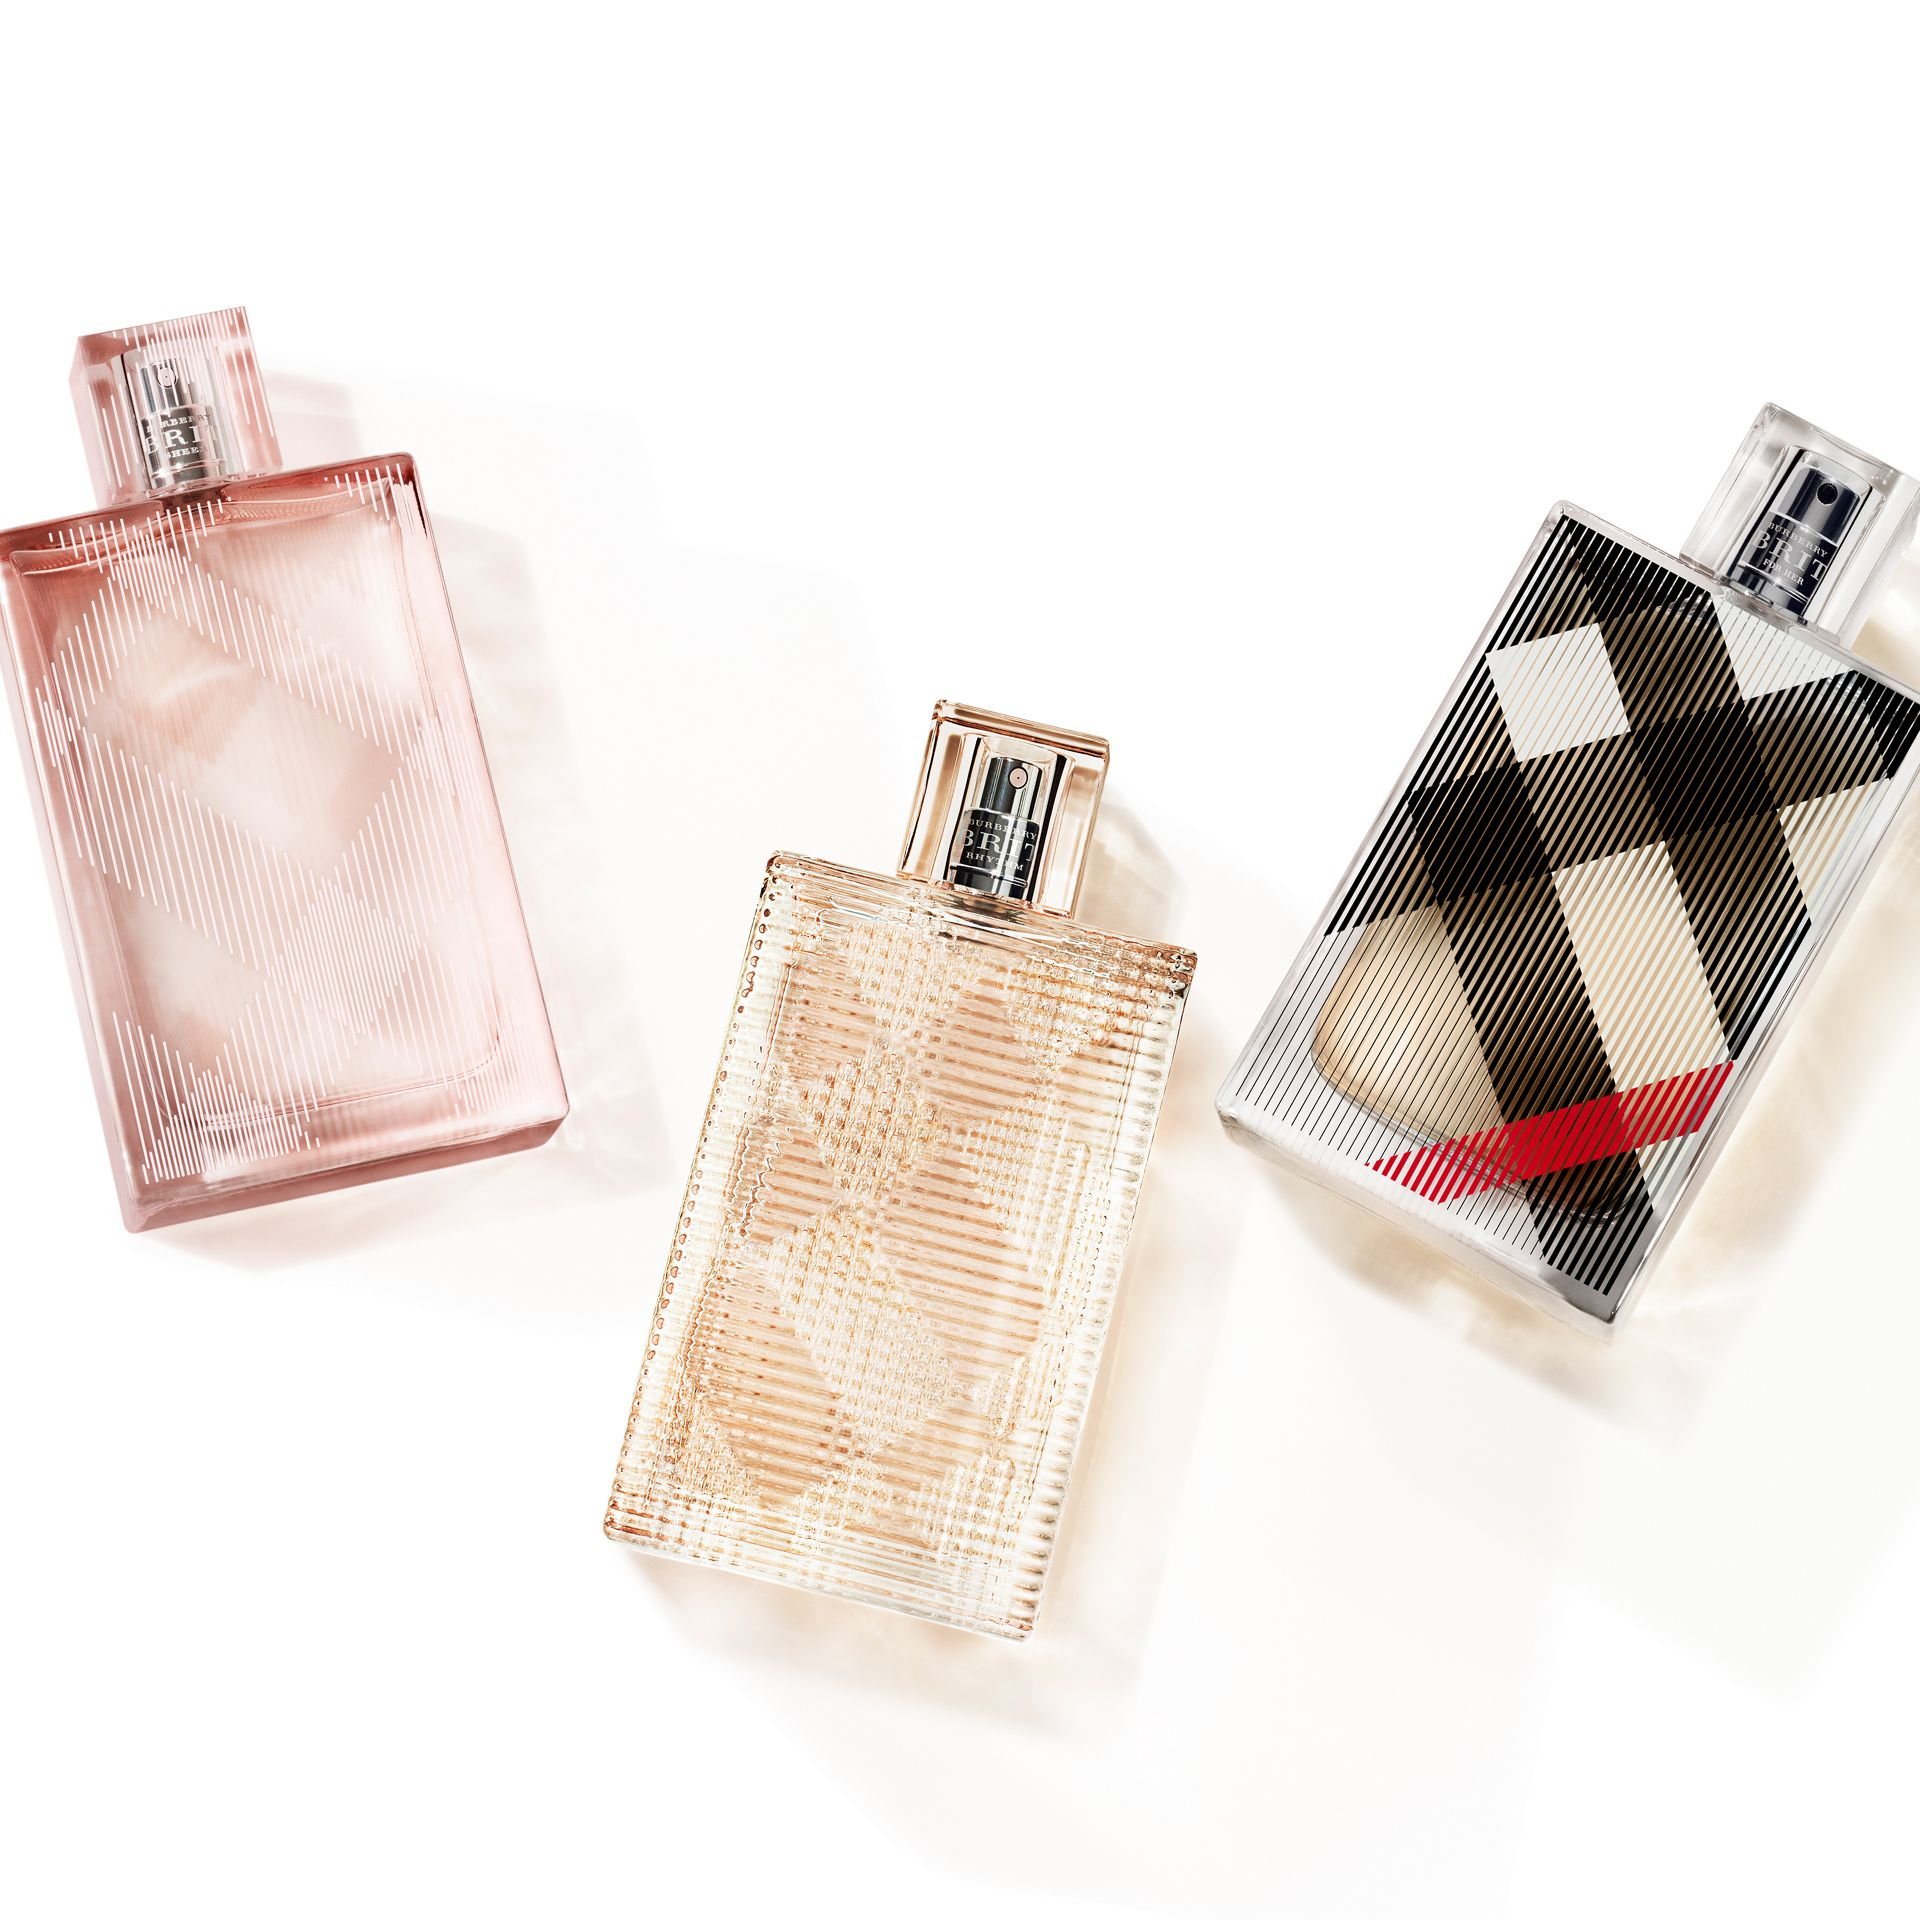 Burberry Brit For Her Eau De Toilette 100 ml - Galerie-Bild 4